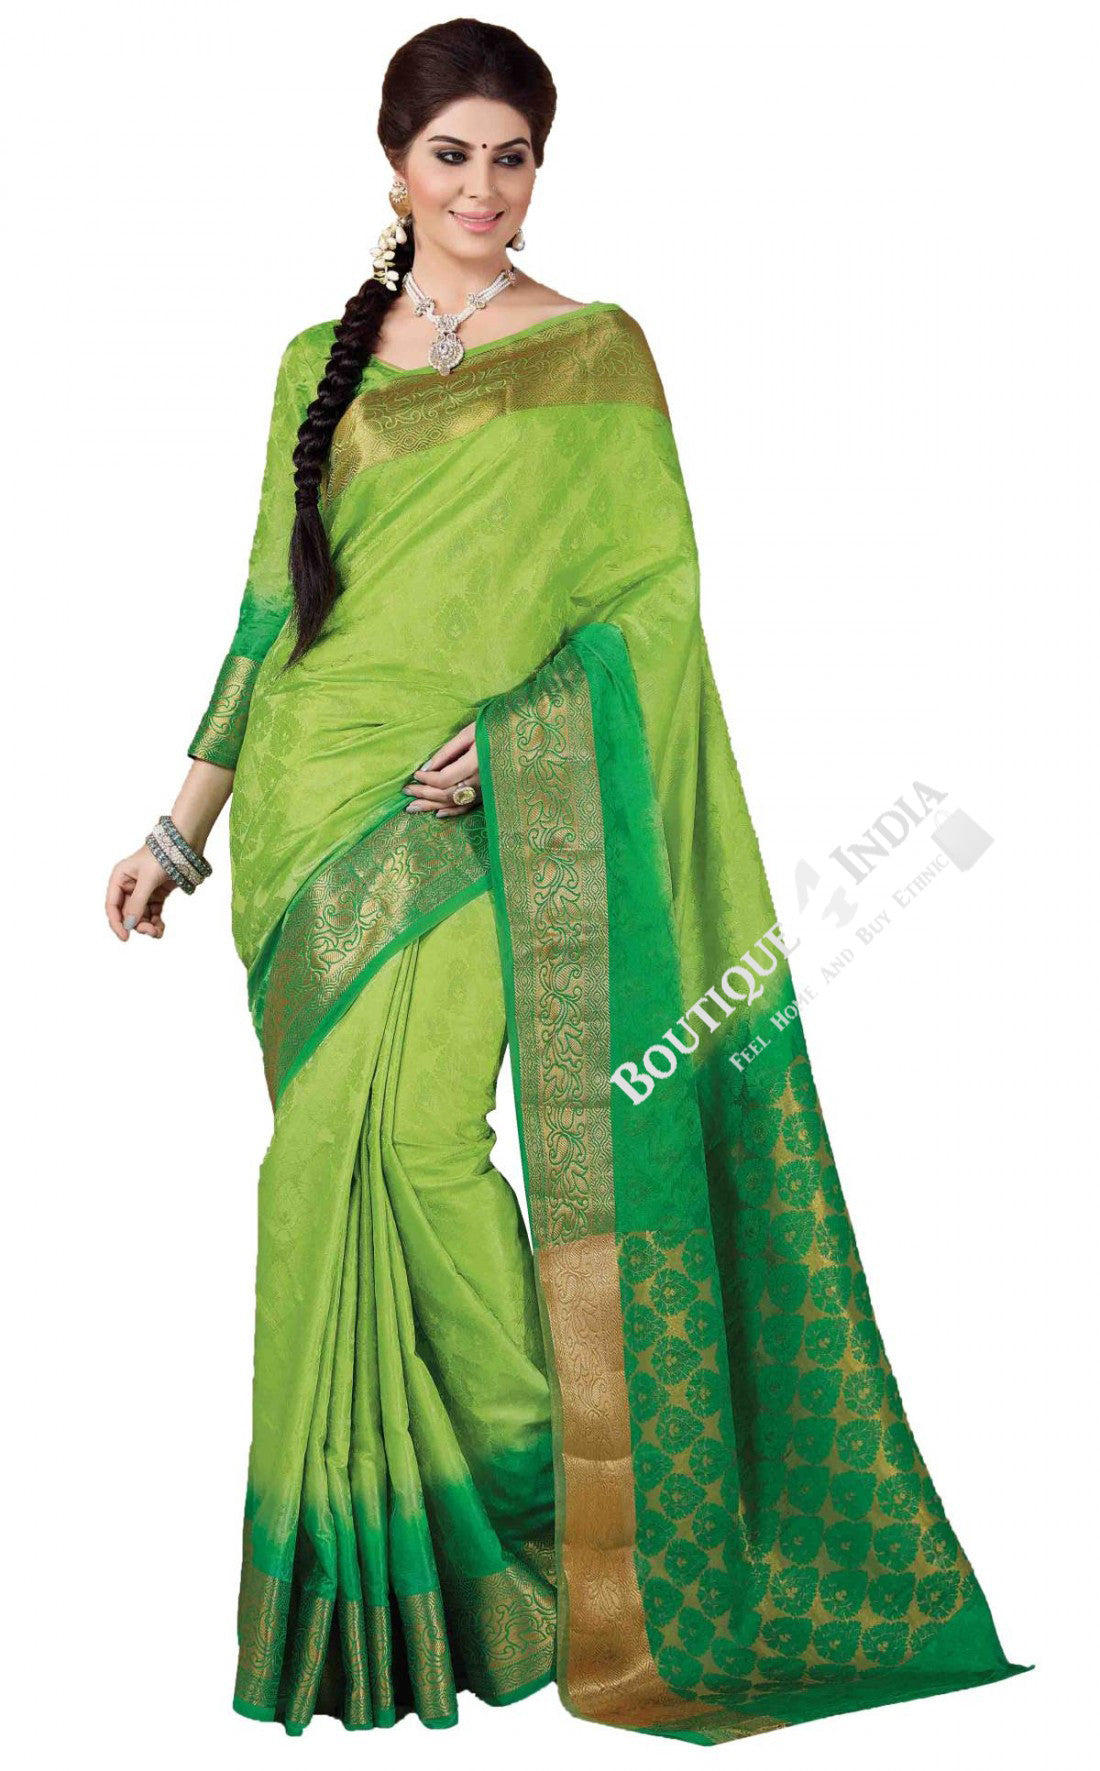 Jacquard Silk Saree in Light and Dark Green - Boutique4India Inc.